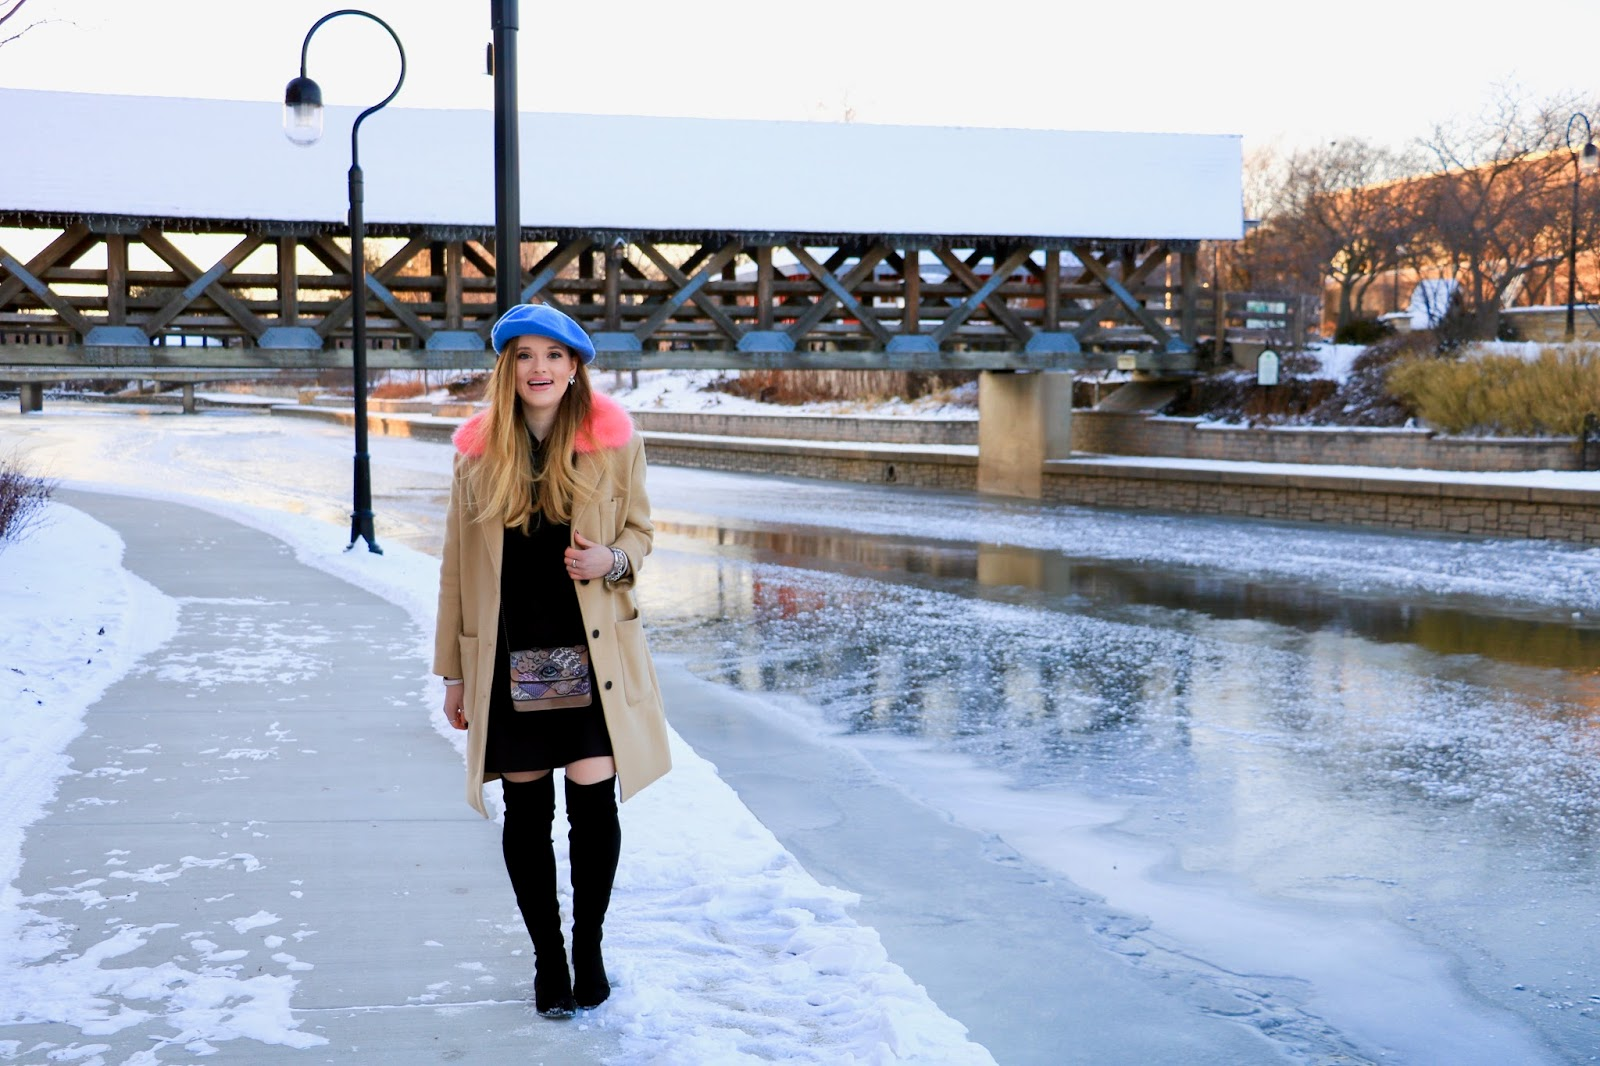 Nyc fashion blogger Kathleen Harper wearing a winter outfit